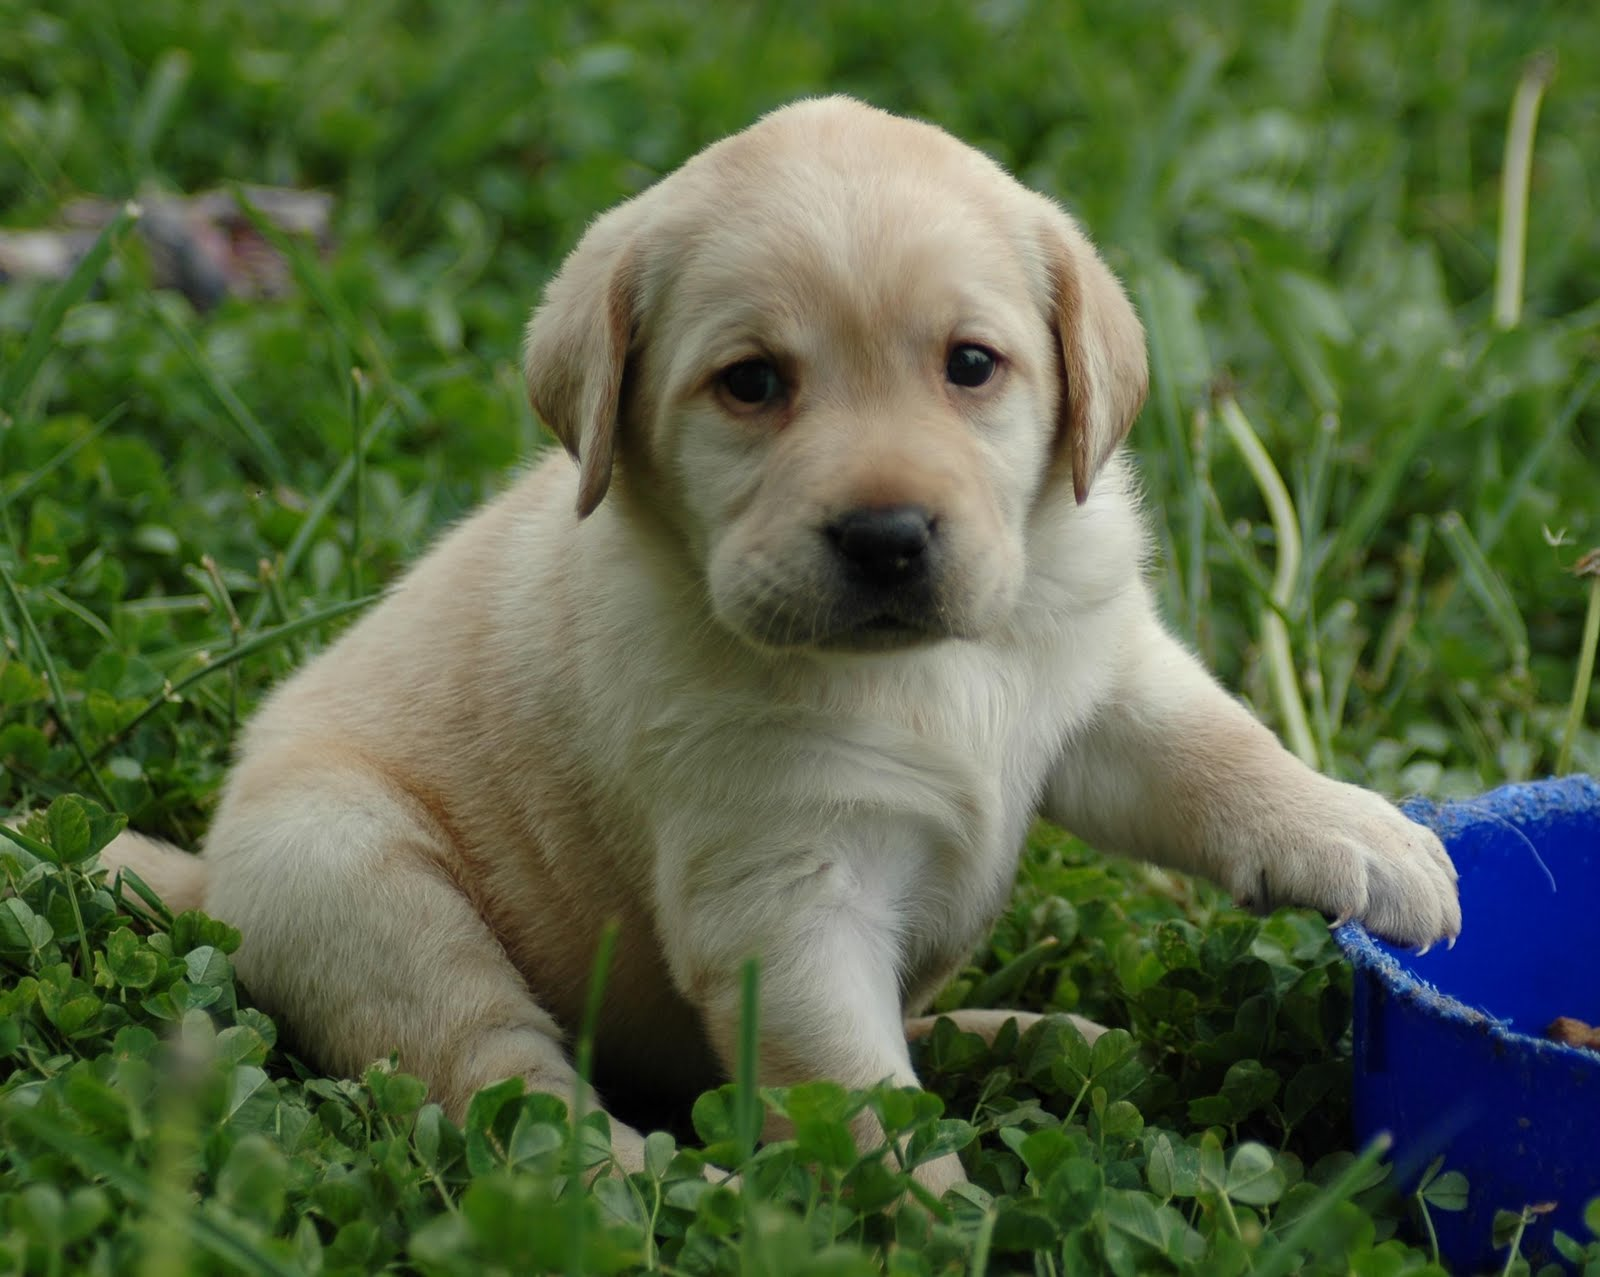 http://4.bp.blogspot.com/-83uJn5YAXiA/TlD2pxDqvPI/AAAAAAAAAoM/uOEmJDzZy6A/s1600/puppy-lab-HD-wallpaper.jpg